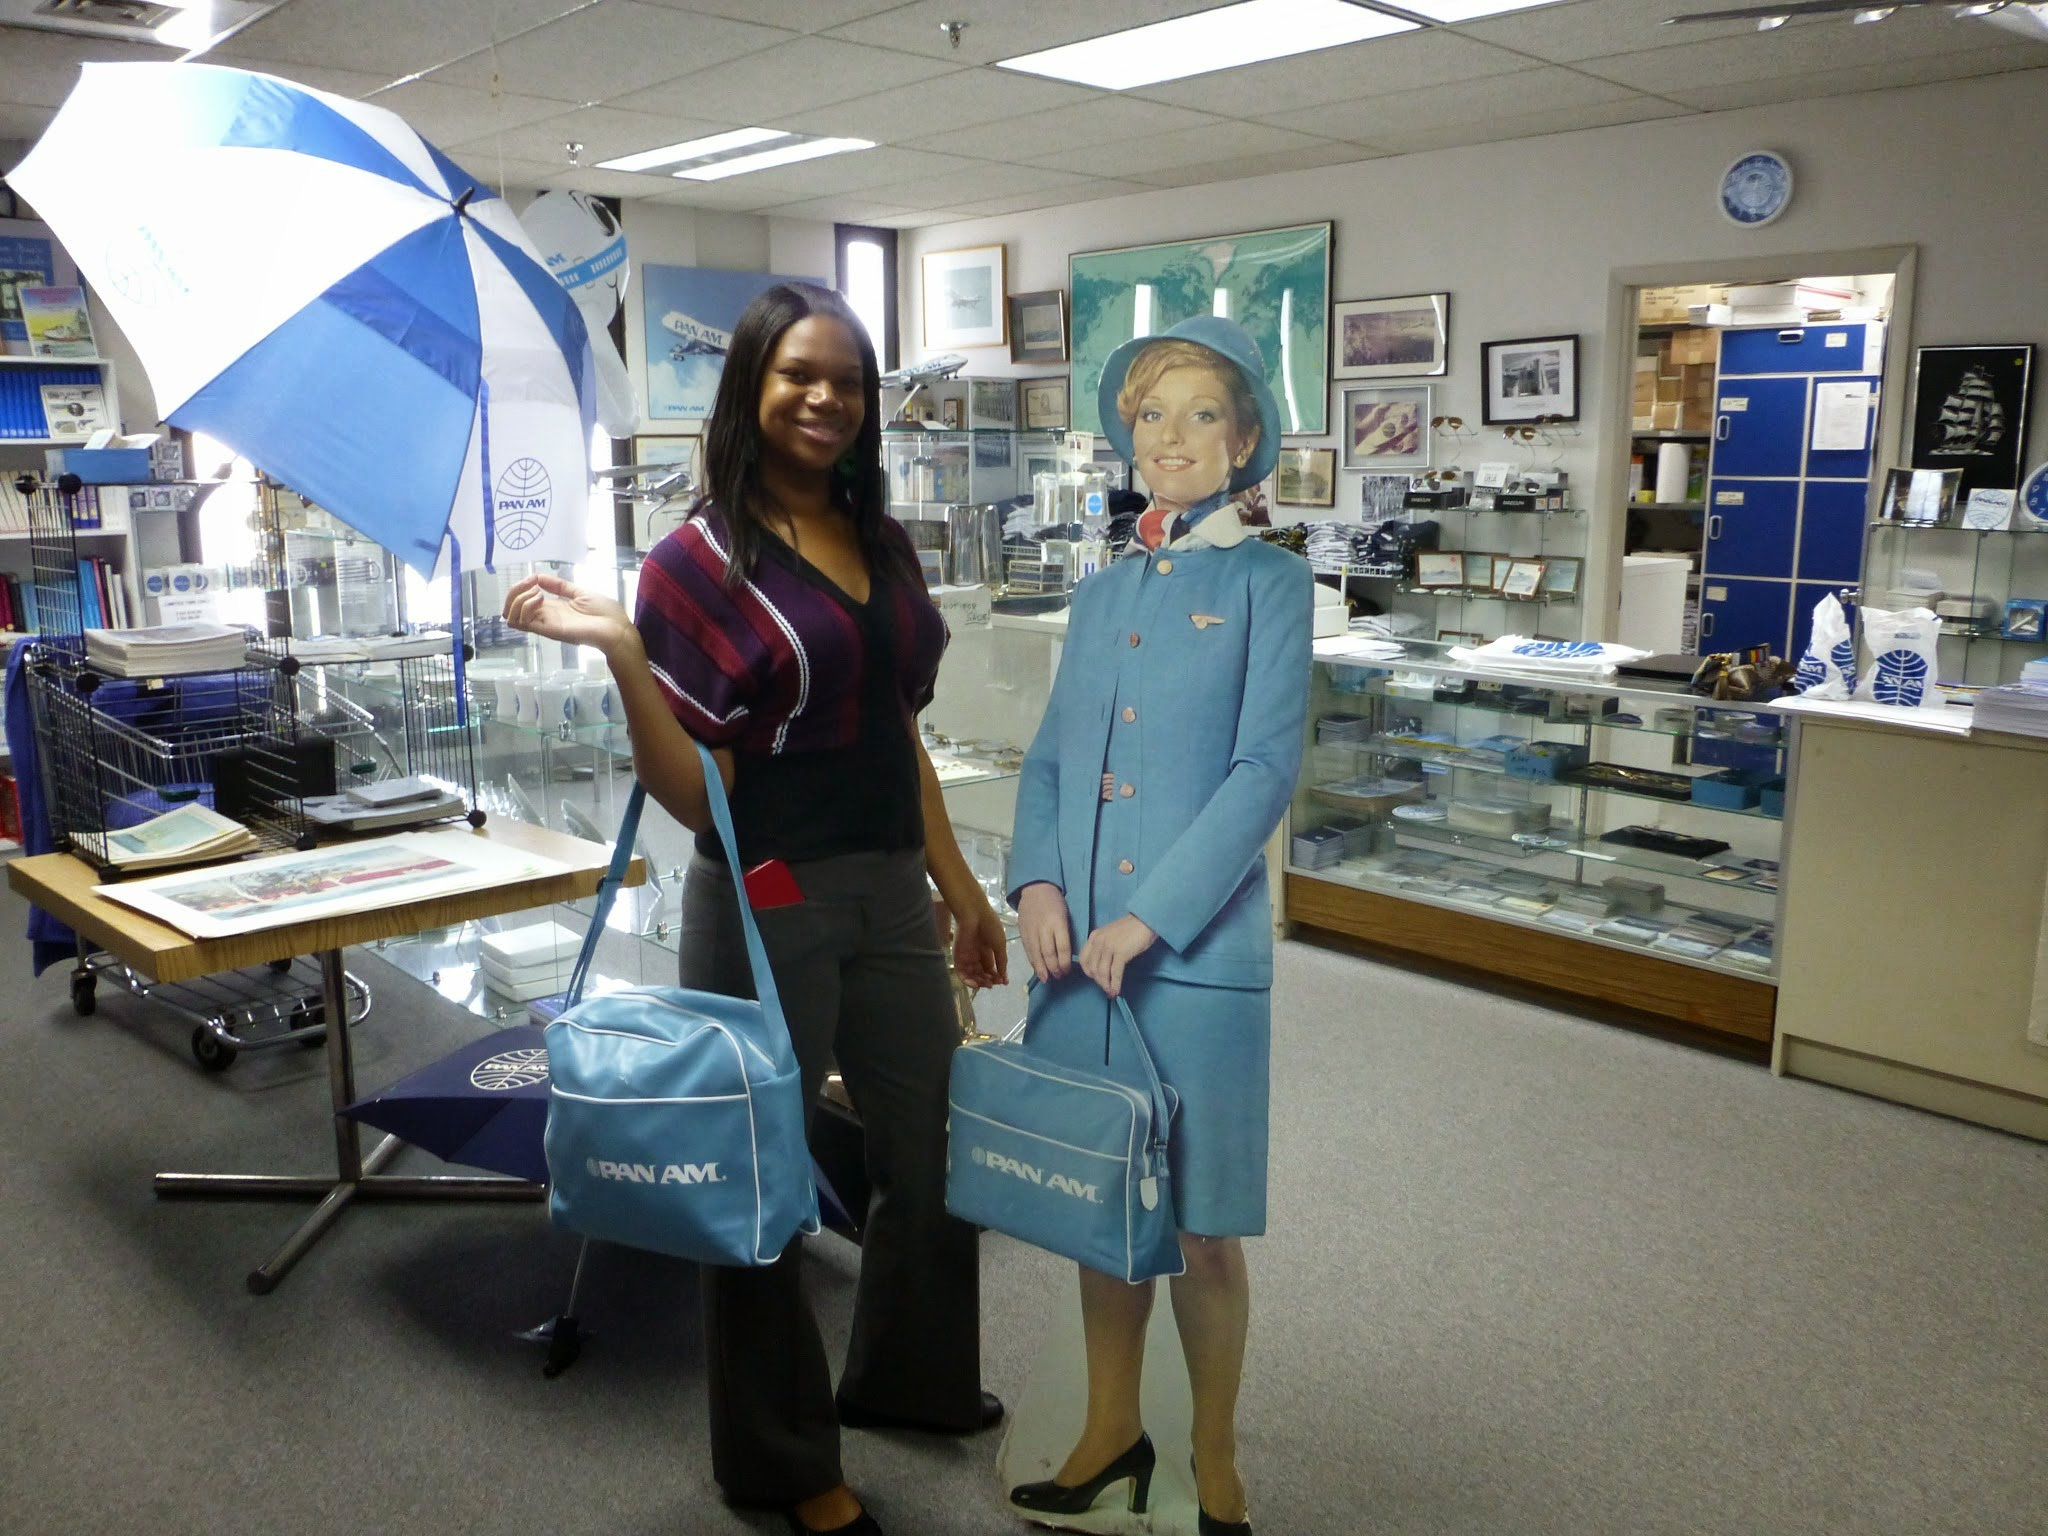 After receiving her award, Hadassah had the opportunity to check out the store at the Pan Am International Flight Academy